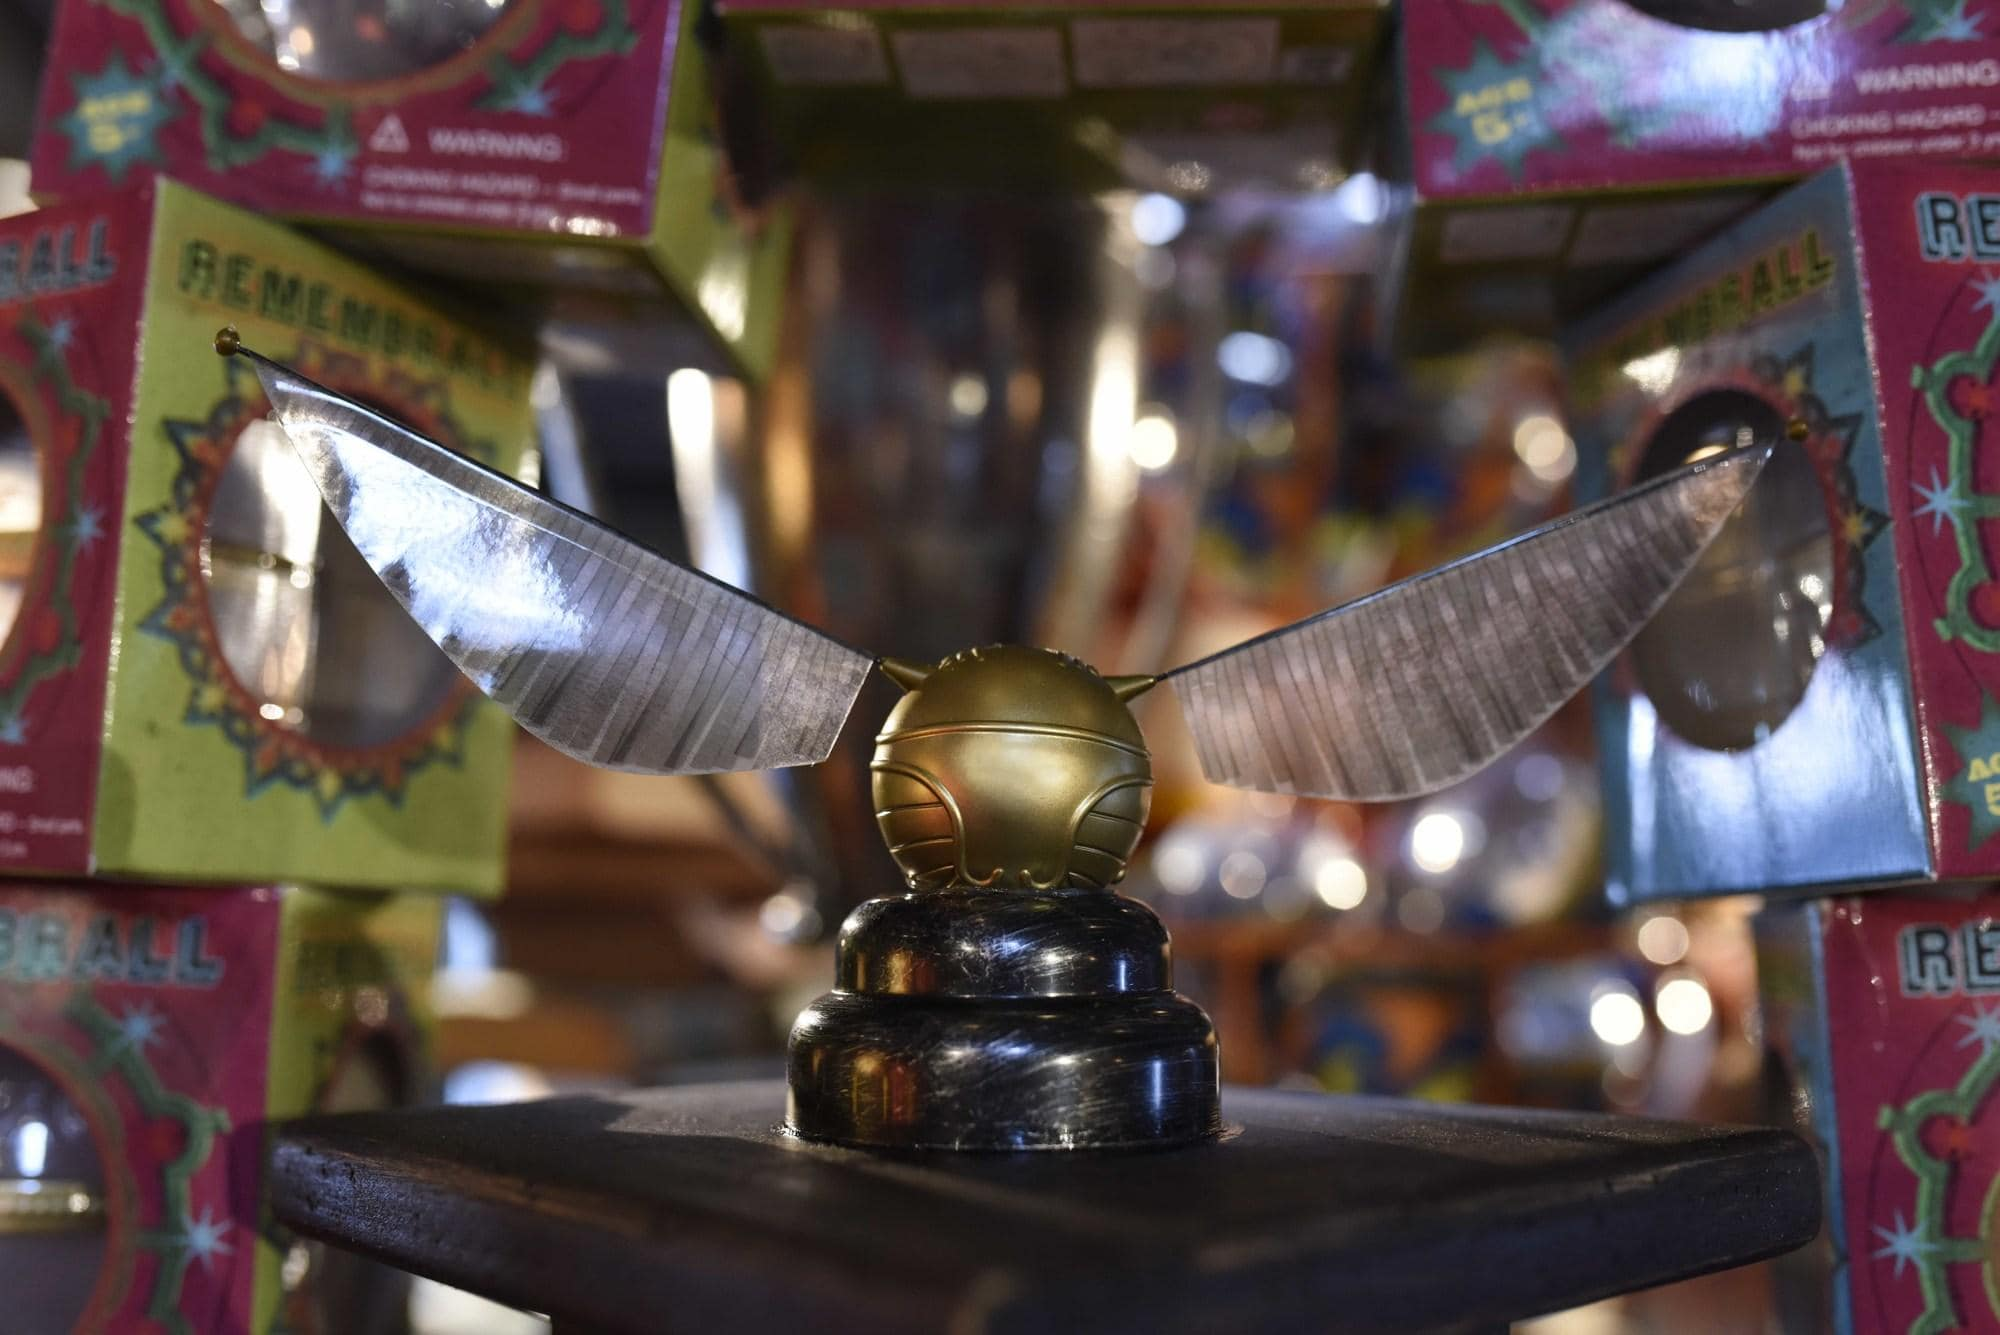 A golden snitch at Dervish and Banges at Universal Hollywood